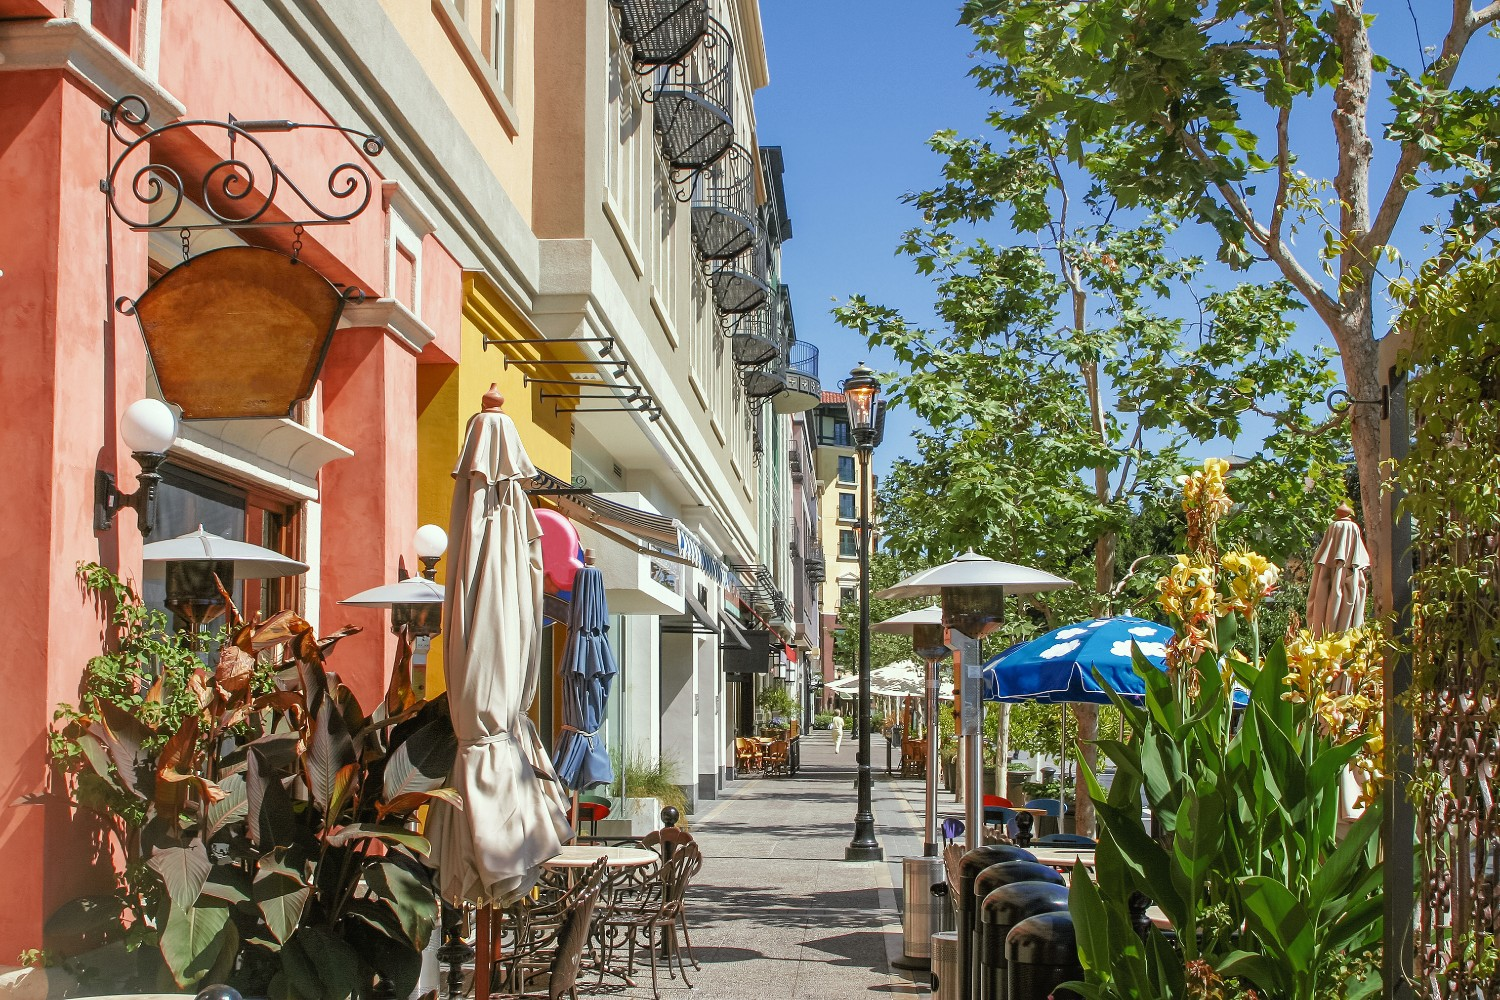 A row of wineries and boutique shops in downtown San Jose.